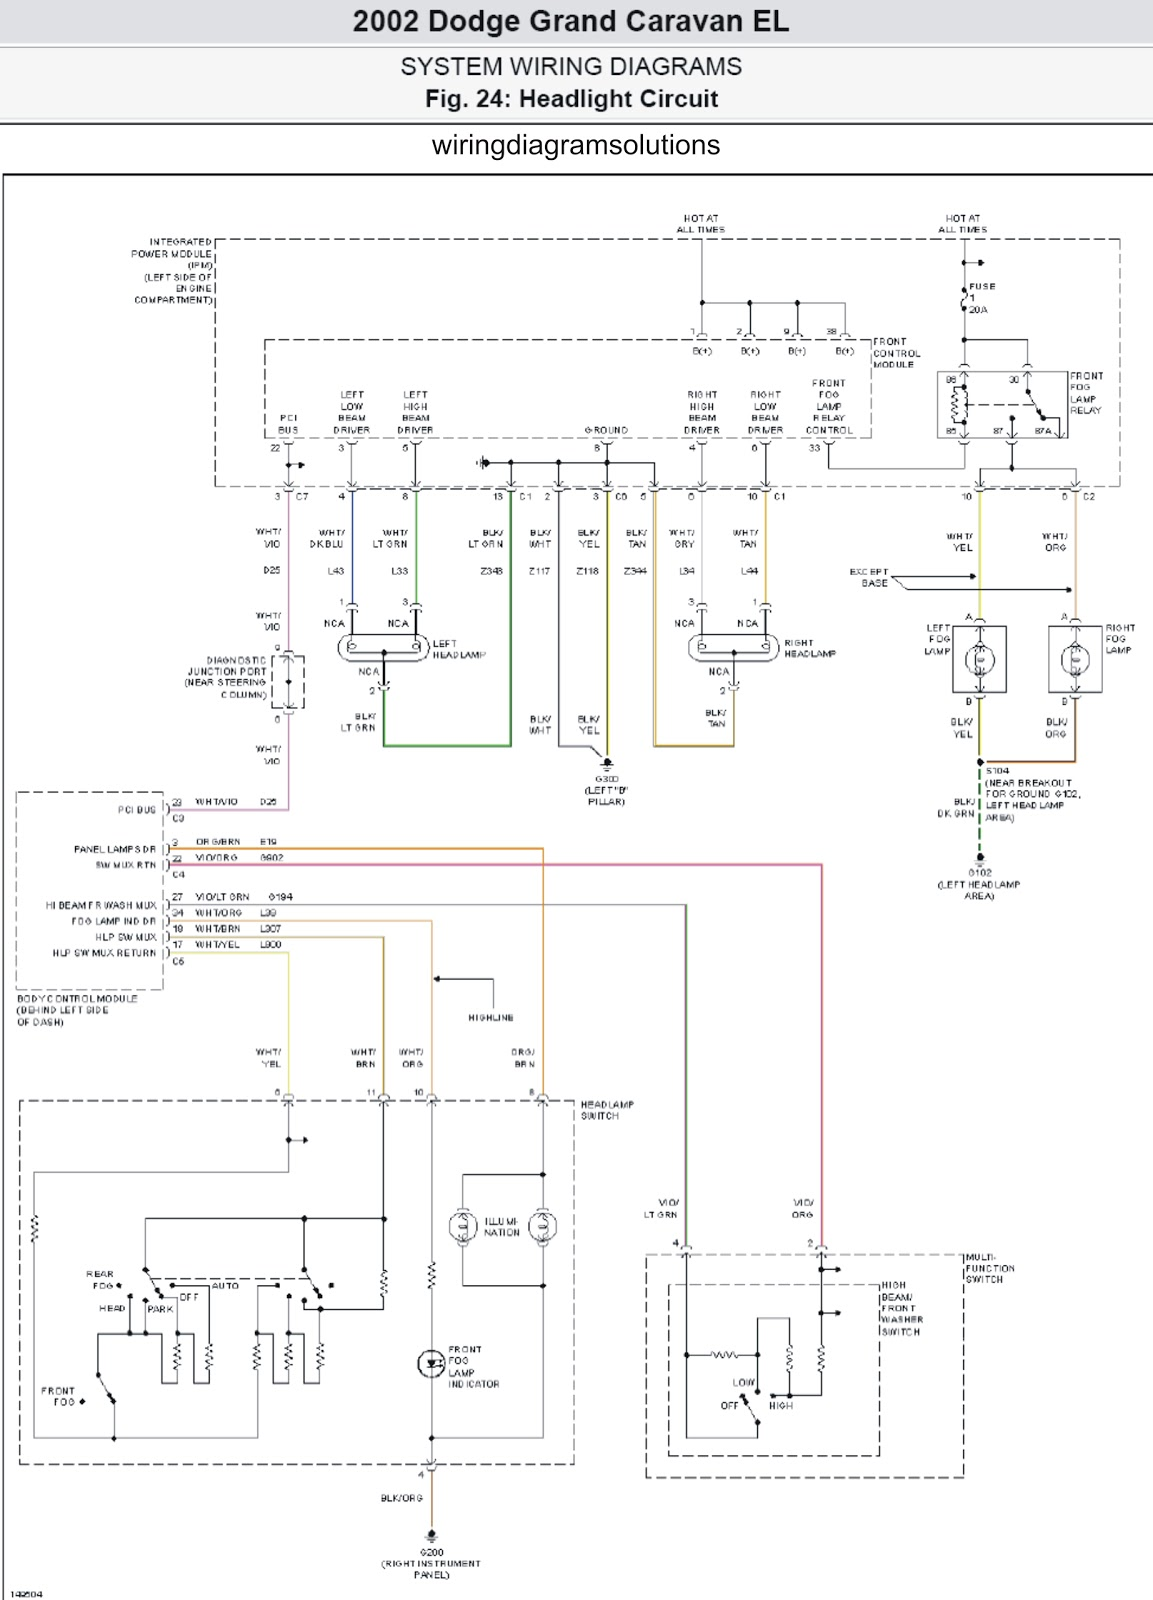 2002+dodge+caravan+Headlight+Circuit wiring diagram for 2015 dodge caravan readingrat net 2015 dodge challenger stereo wiring diagram at suagrazia.org